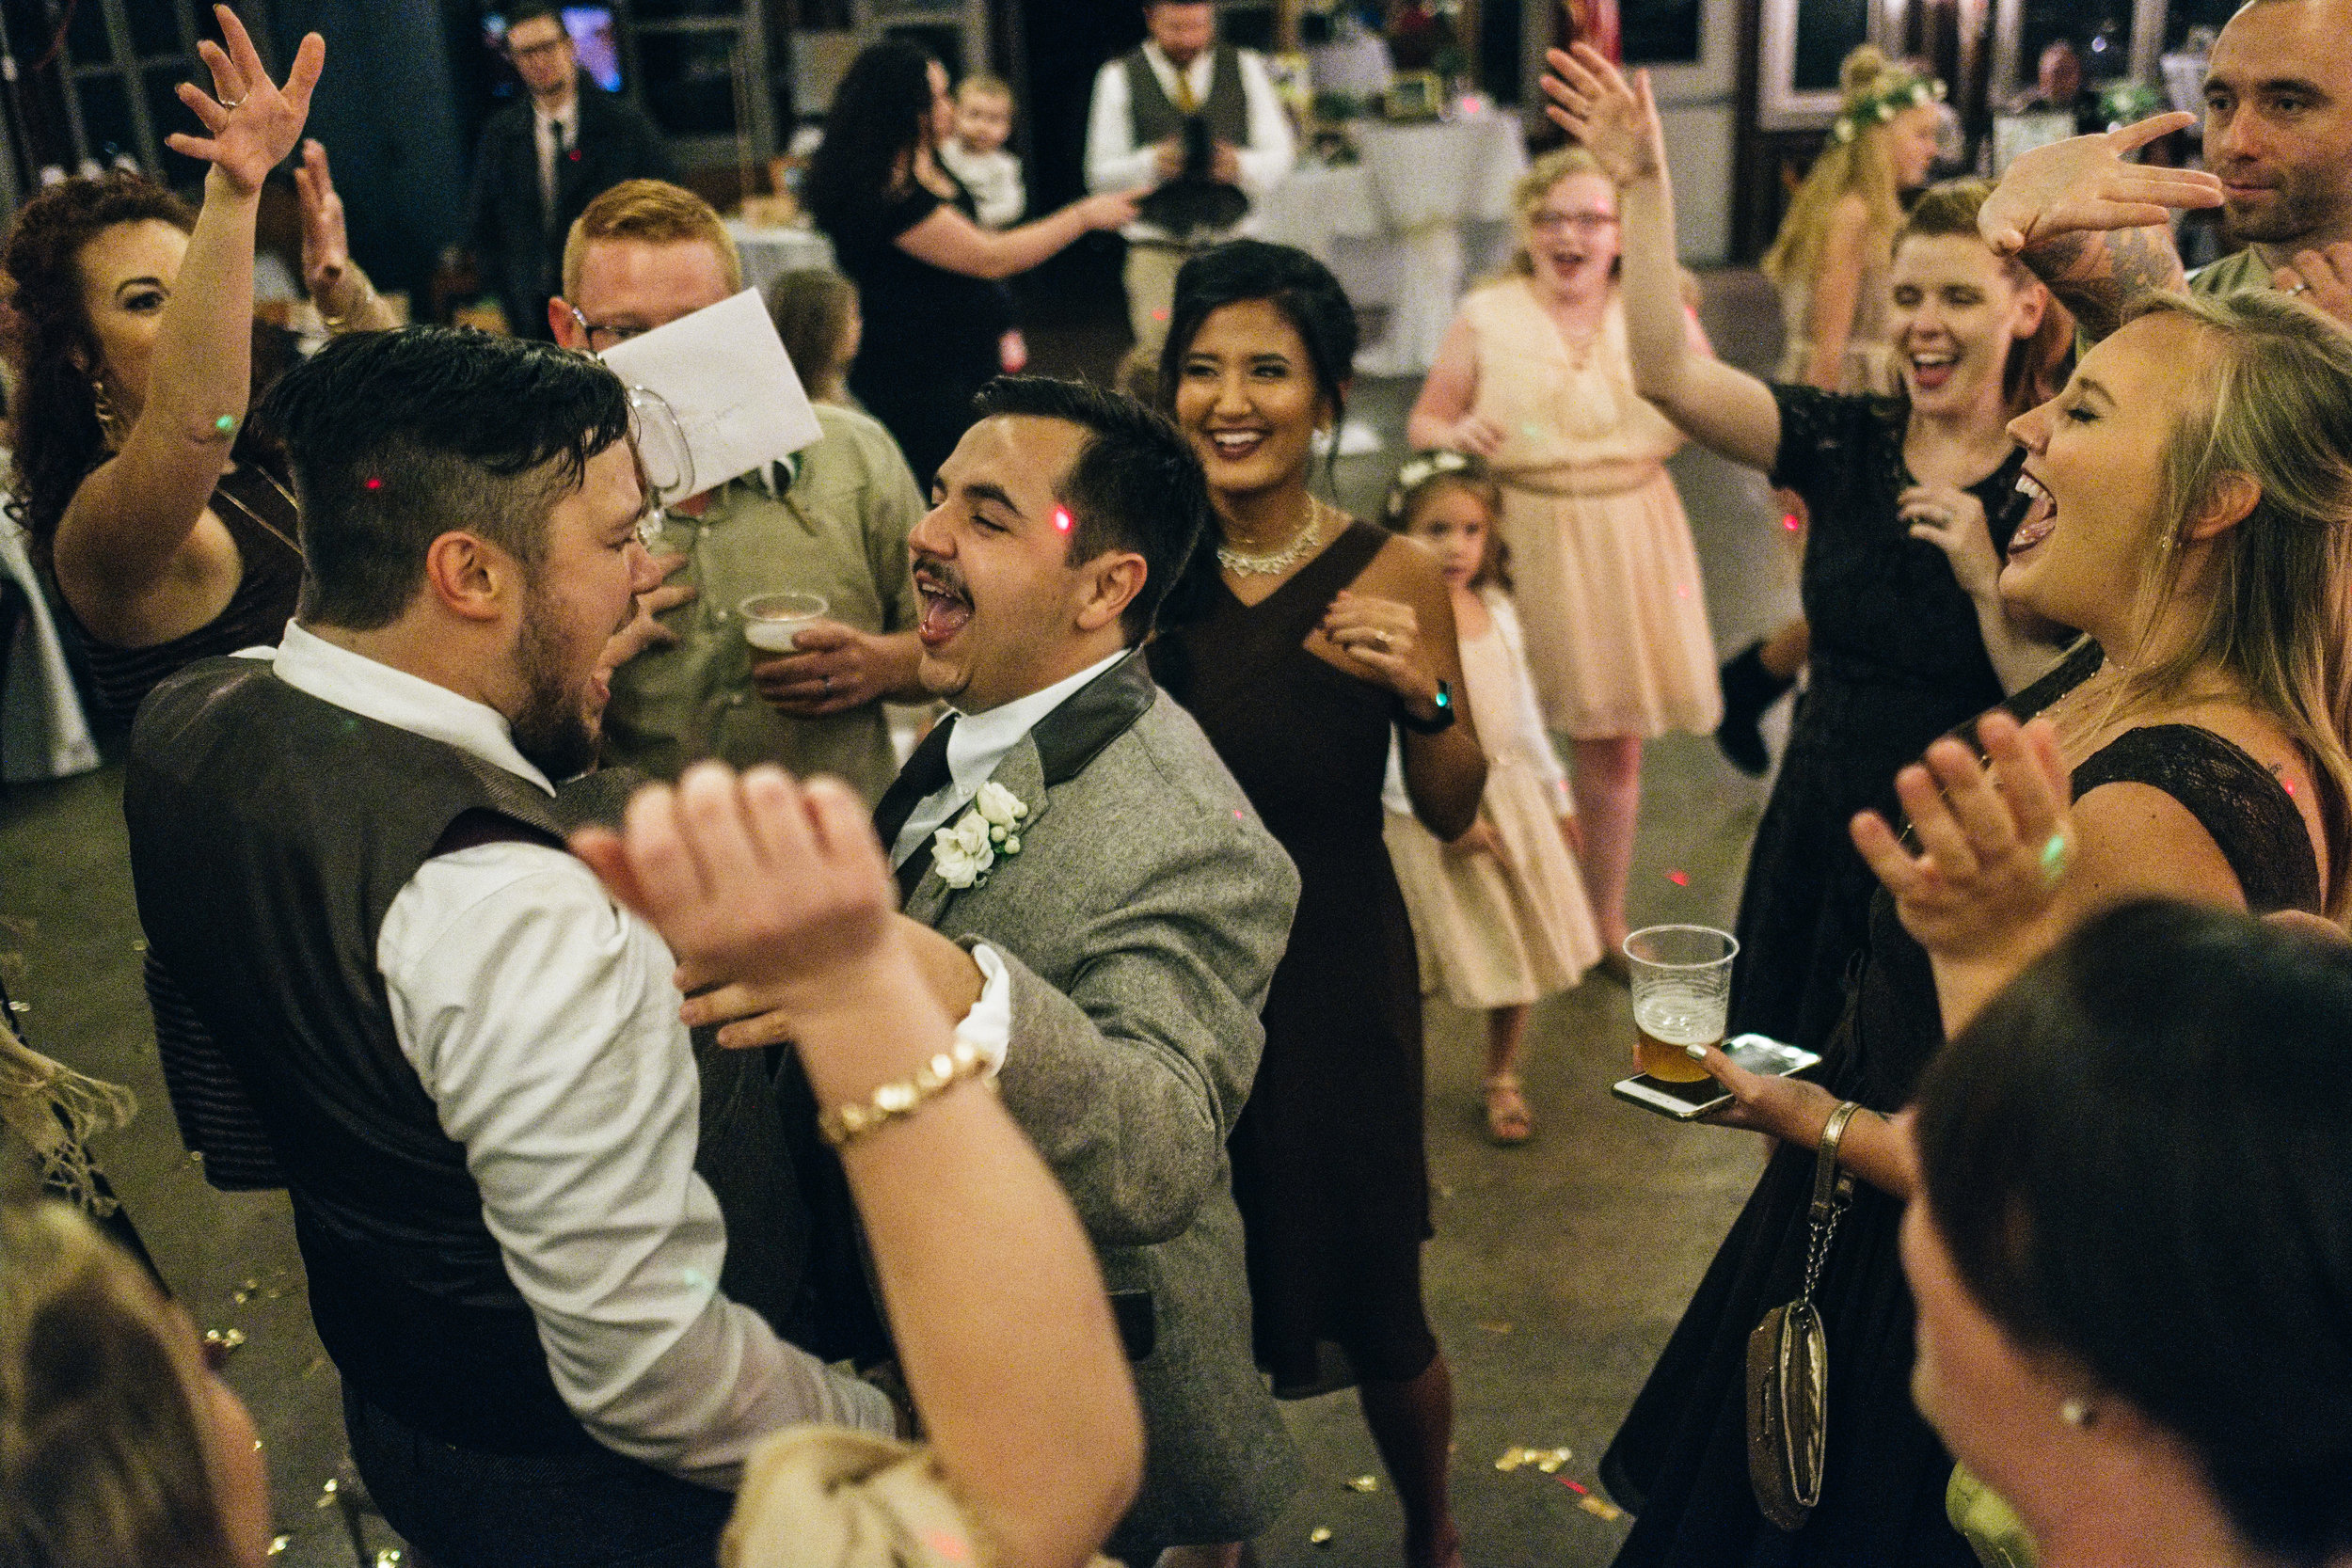 Same Sex Couples Dances with Guests at Wedding Reception in Cabin at Wayne Lakes Michigan with Toledo Wedding Photographers